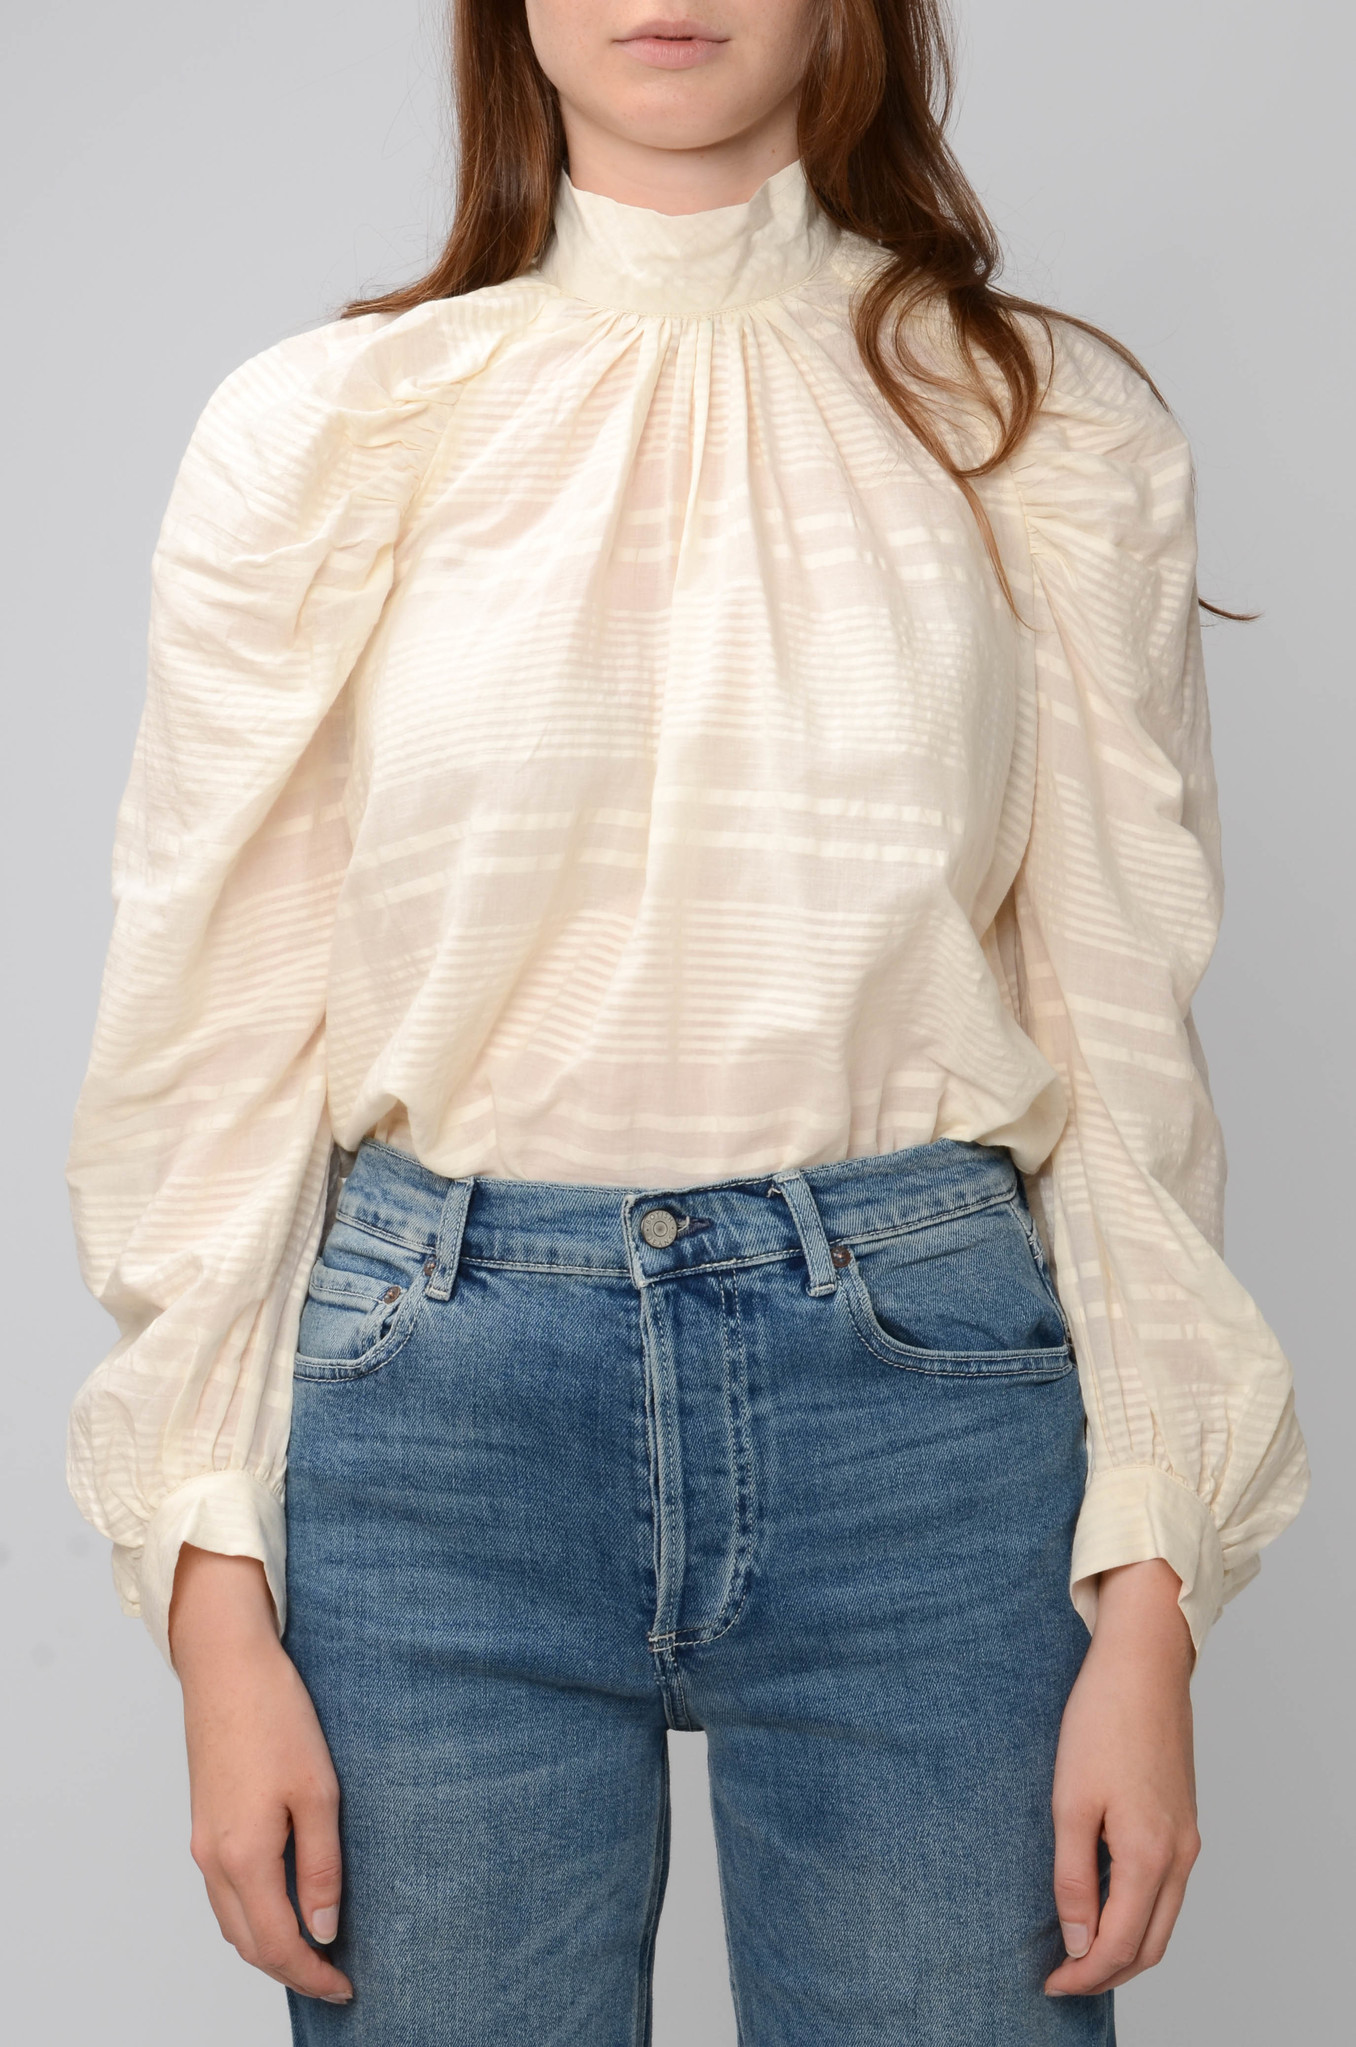 ASTA BLOUSE IN OFF WHITE-1